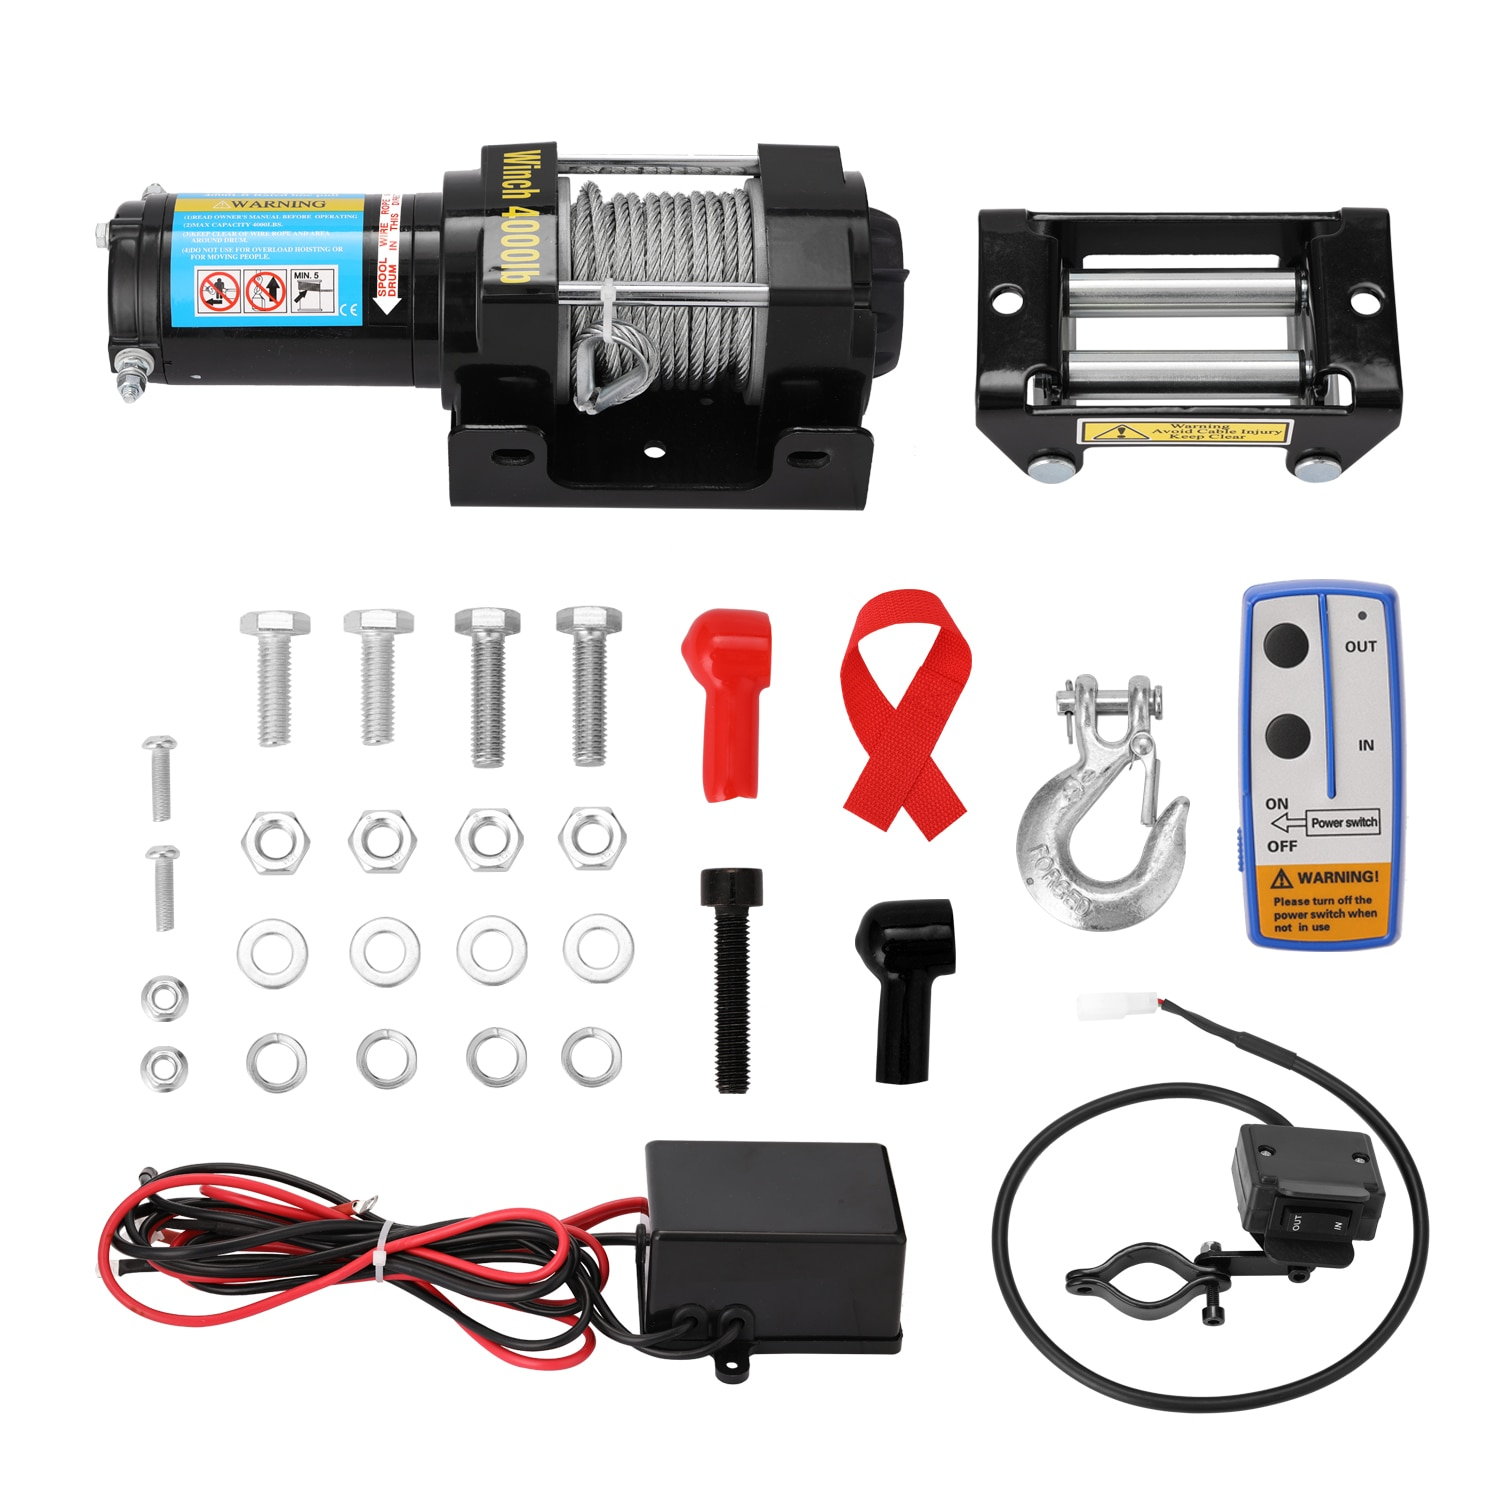 Professional 4000lbs Electric Recovery Winch Kit ATV Trailer Truck Car DC12V Remote Control Winches Winch